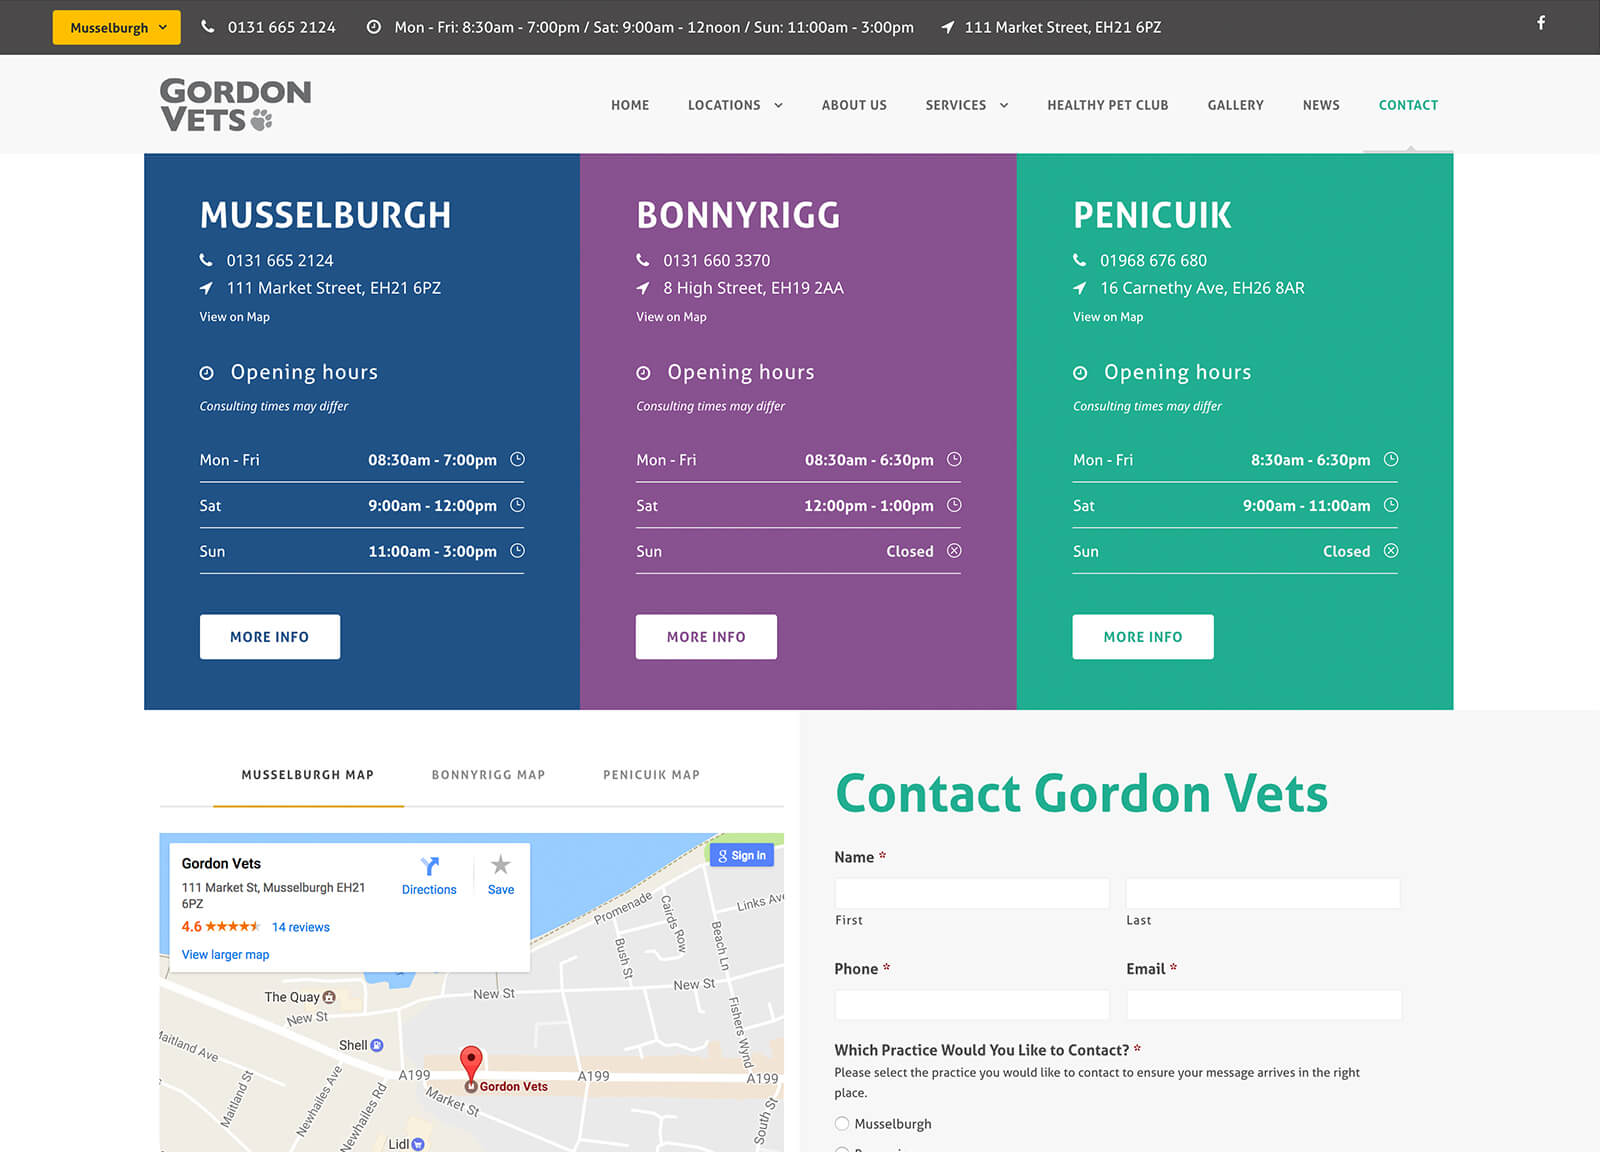 Contact page for Gordon Vets website